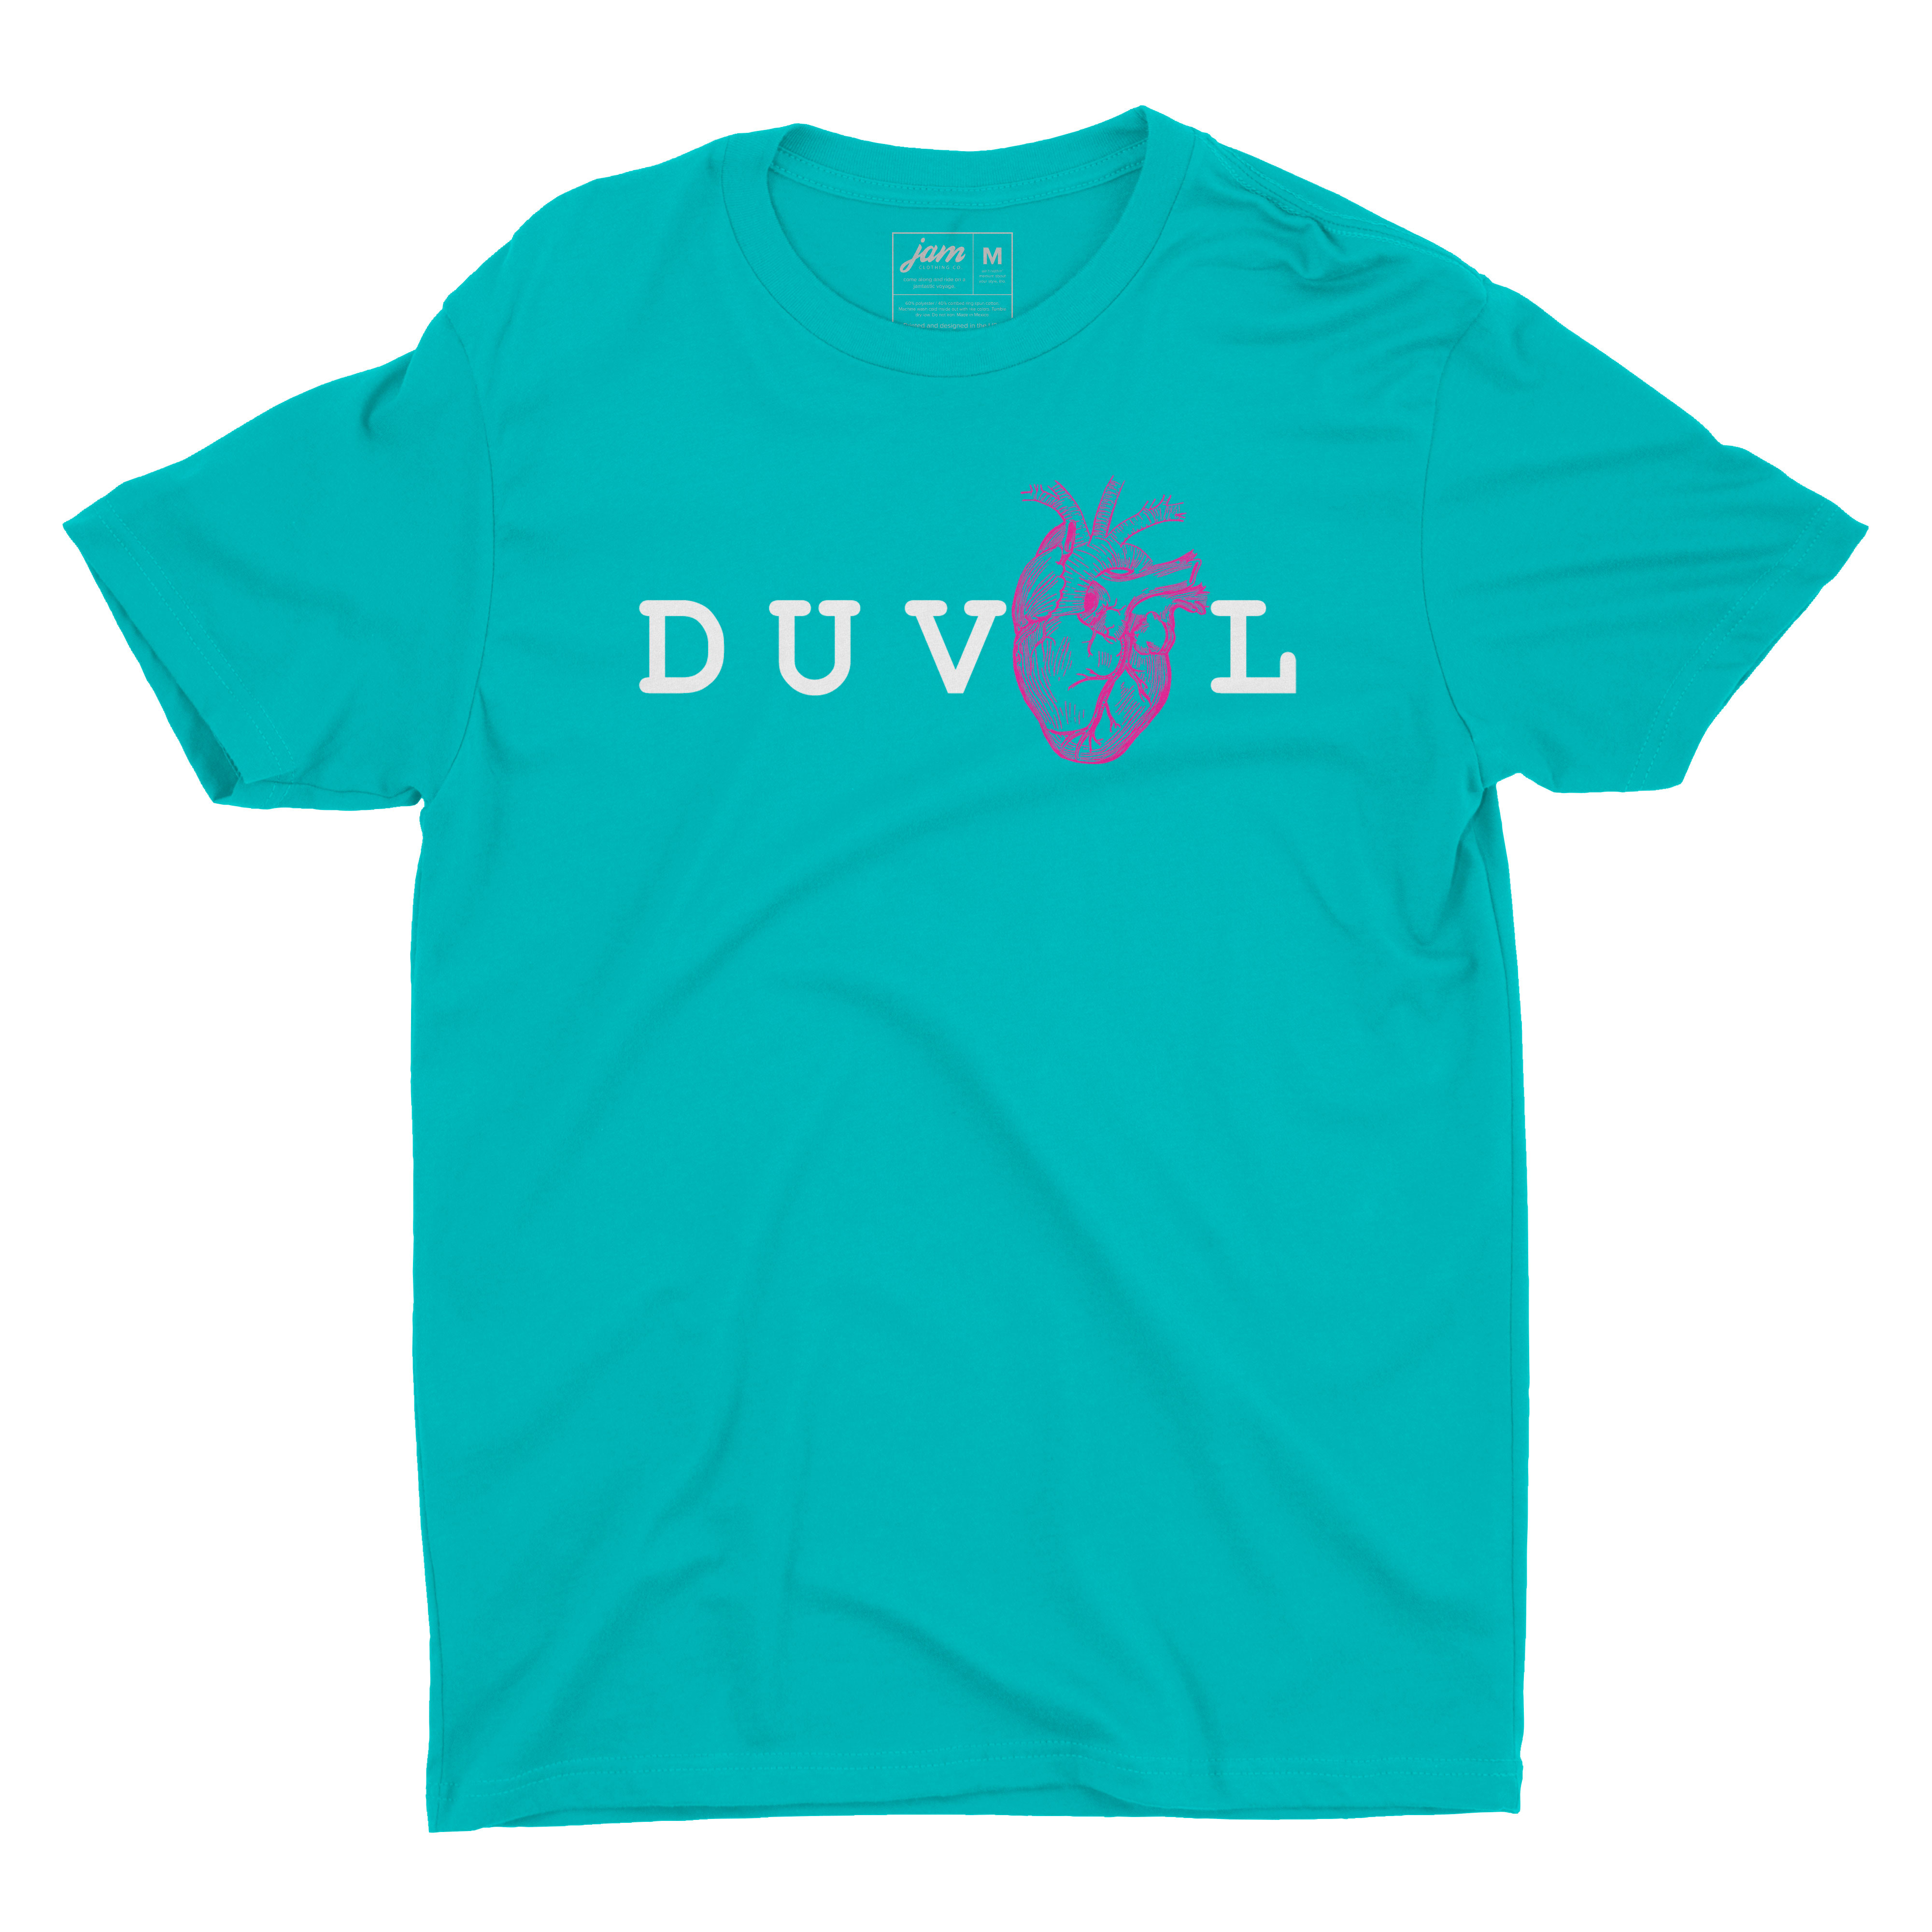 huge discount 10037 4d15a My Heart Is In DUVAL - Unisex T-Shirt